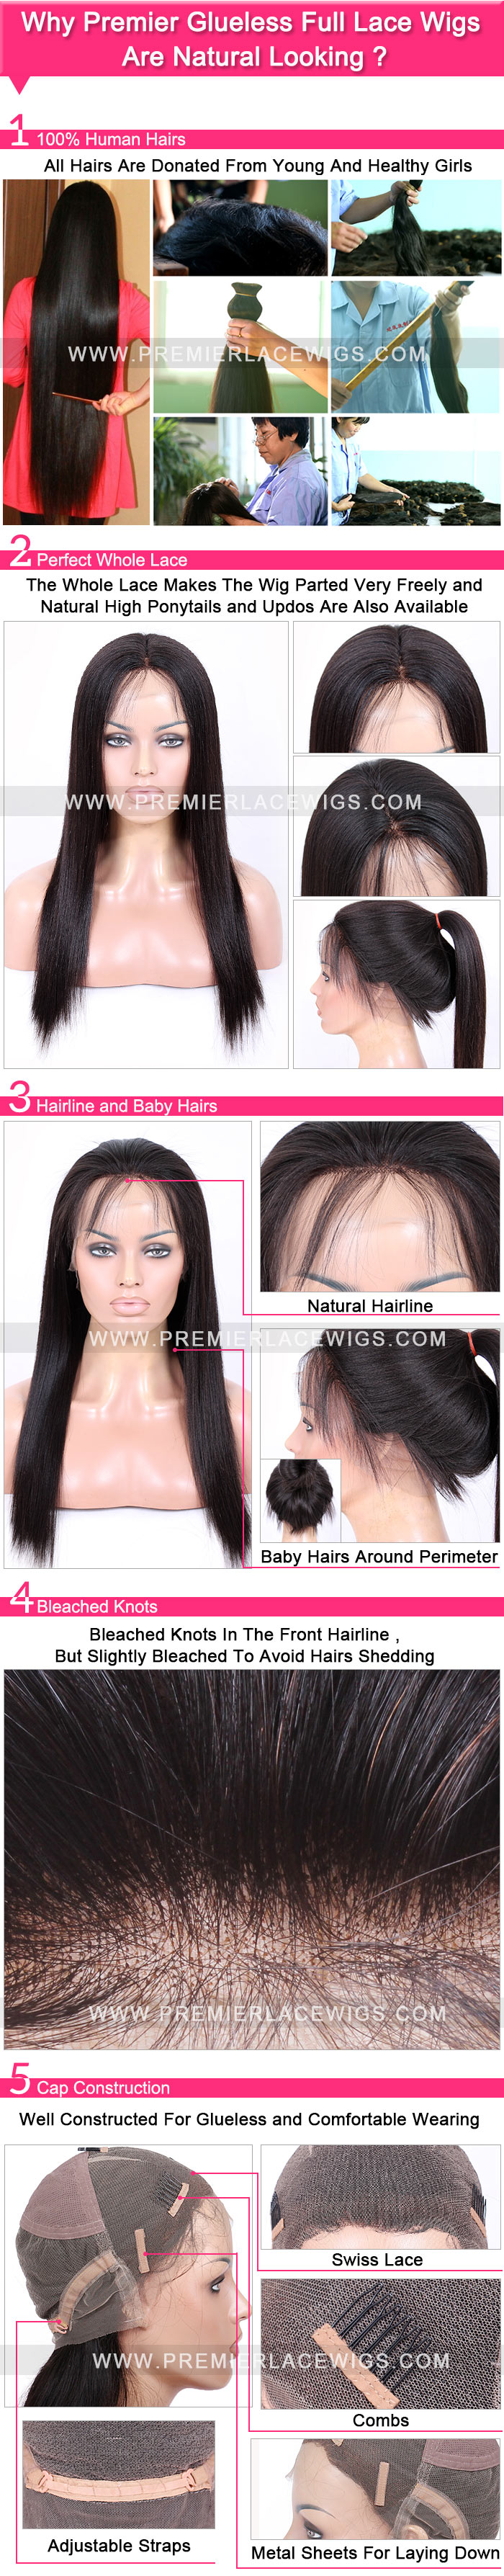 Glueless Full Lace Wig Natural looking